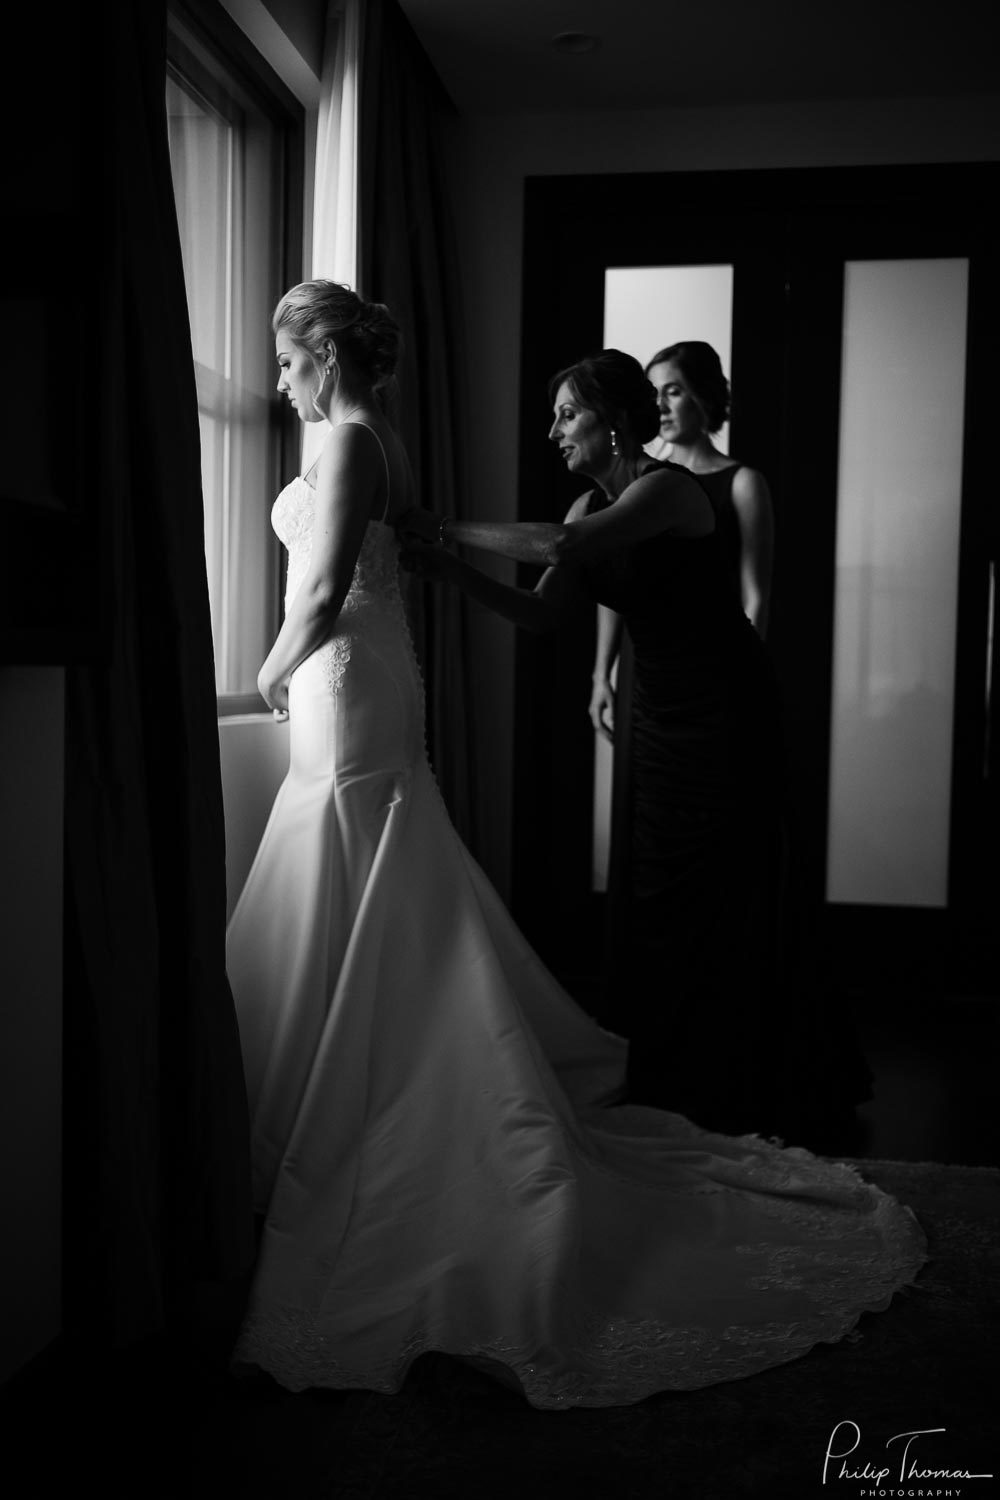 20-The JW Marriott Downtown Houston bride and groom get ready -Philip Thomas Photography